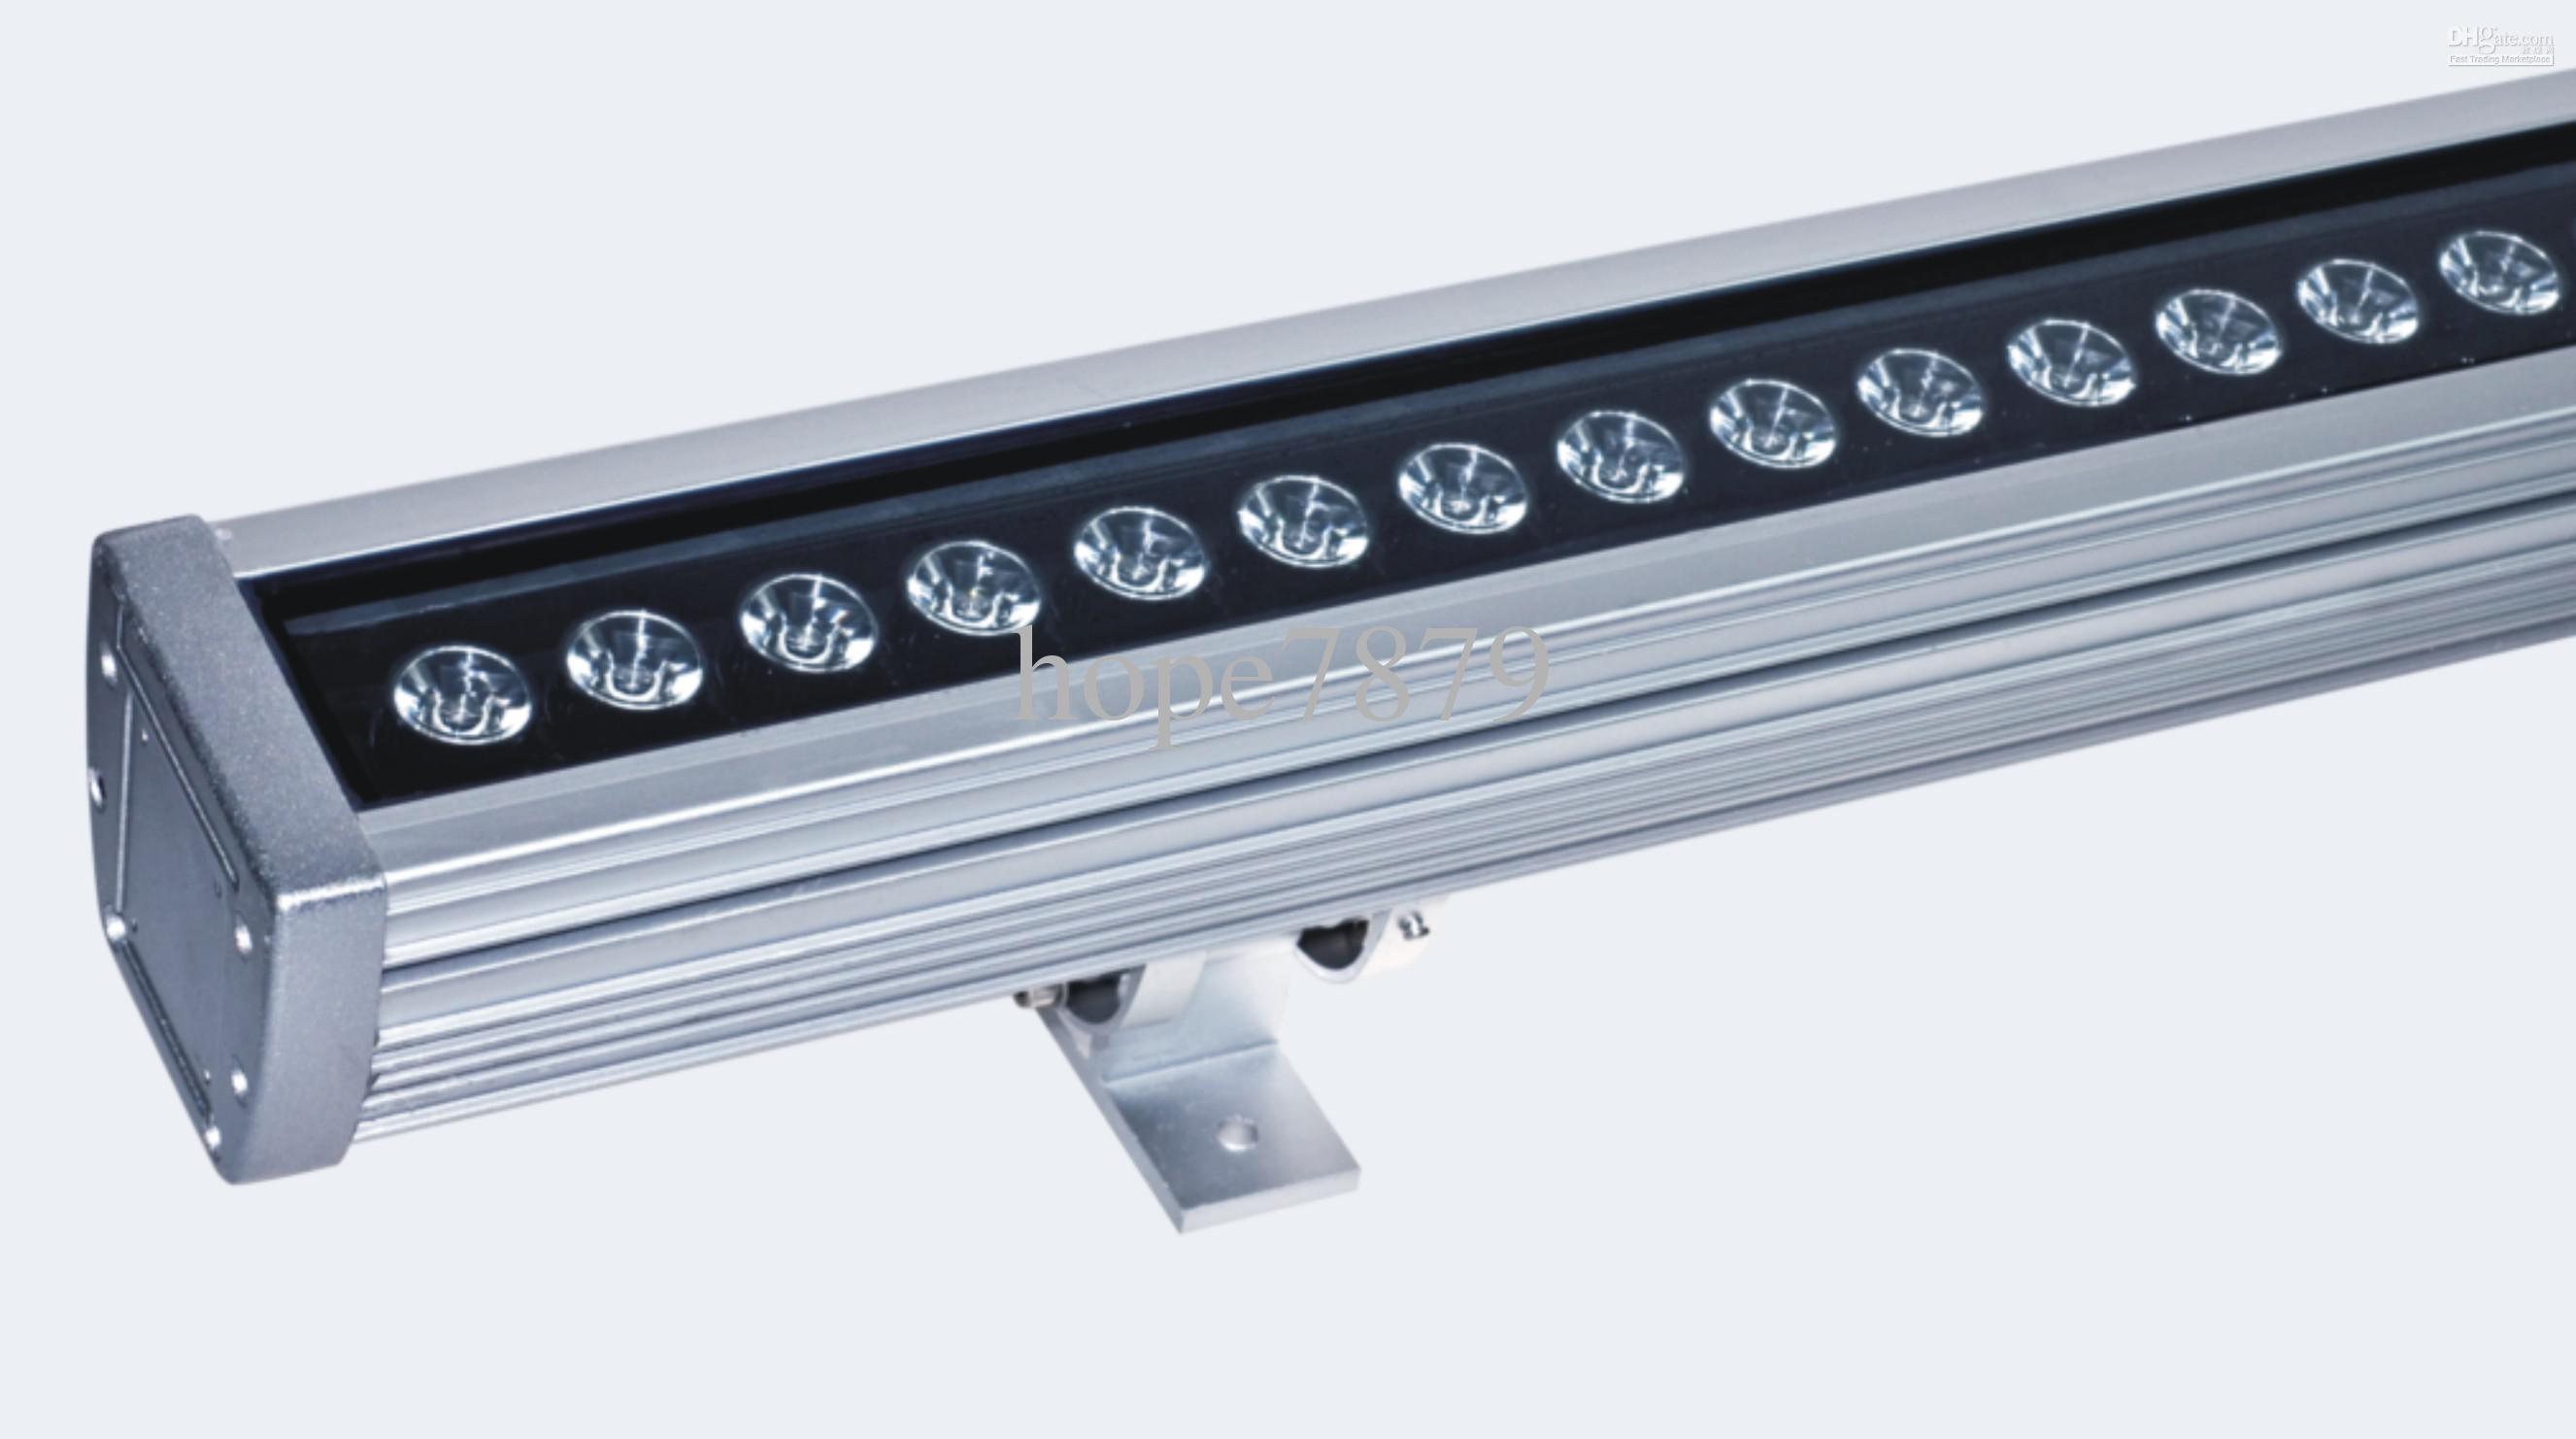 30w Led Wall Washer Light Wall Wash Light Led Outdoor Wall Lamp For Option 2y